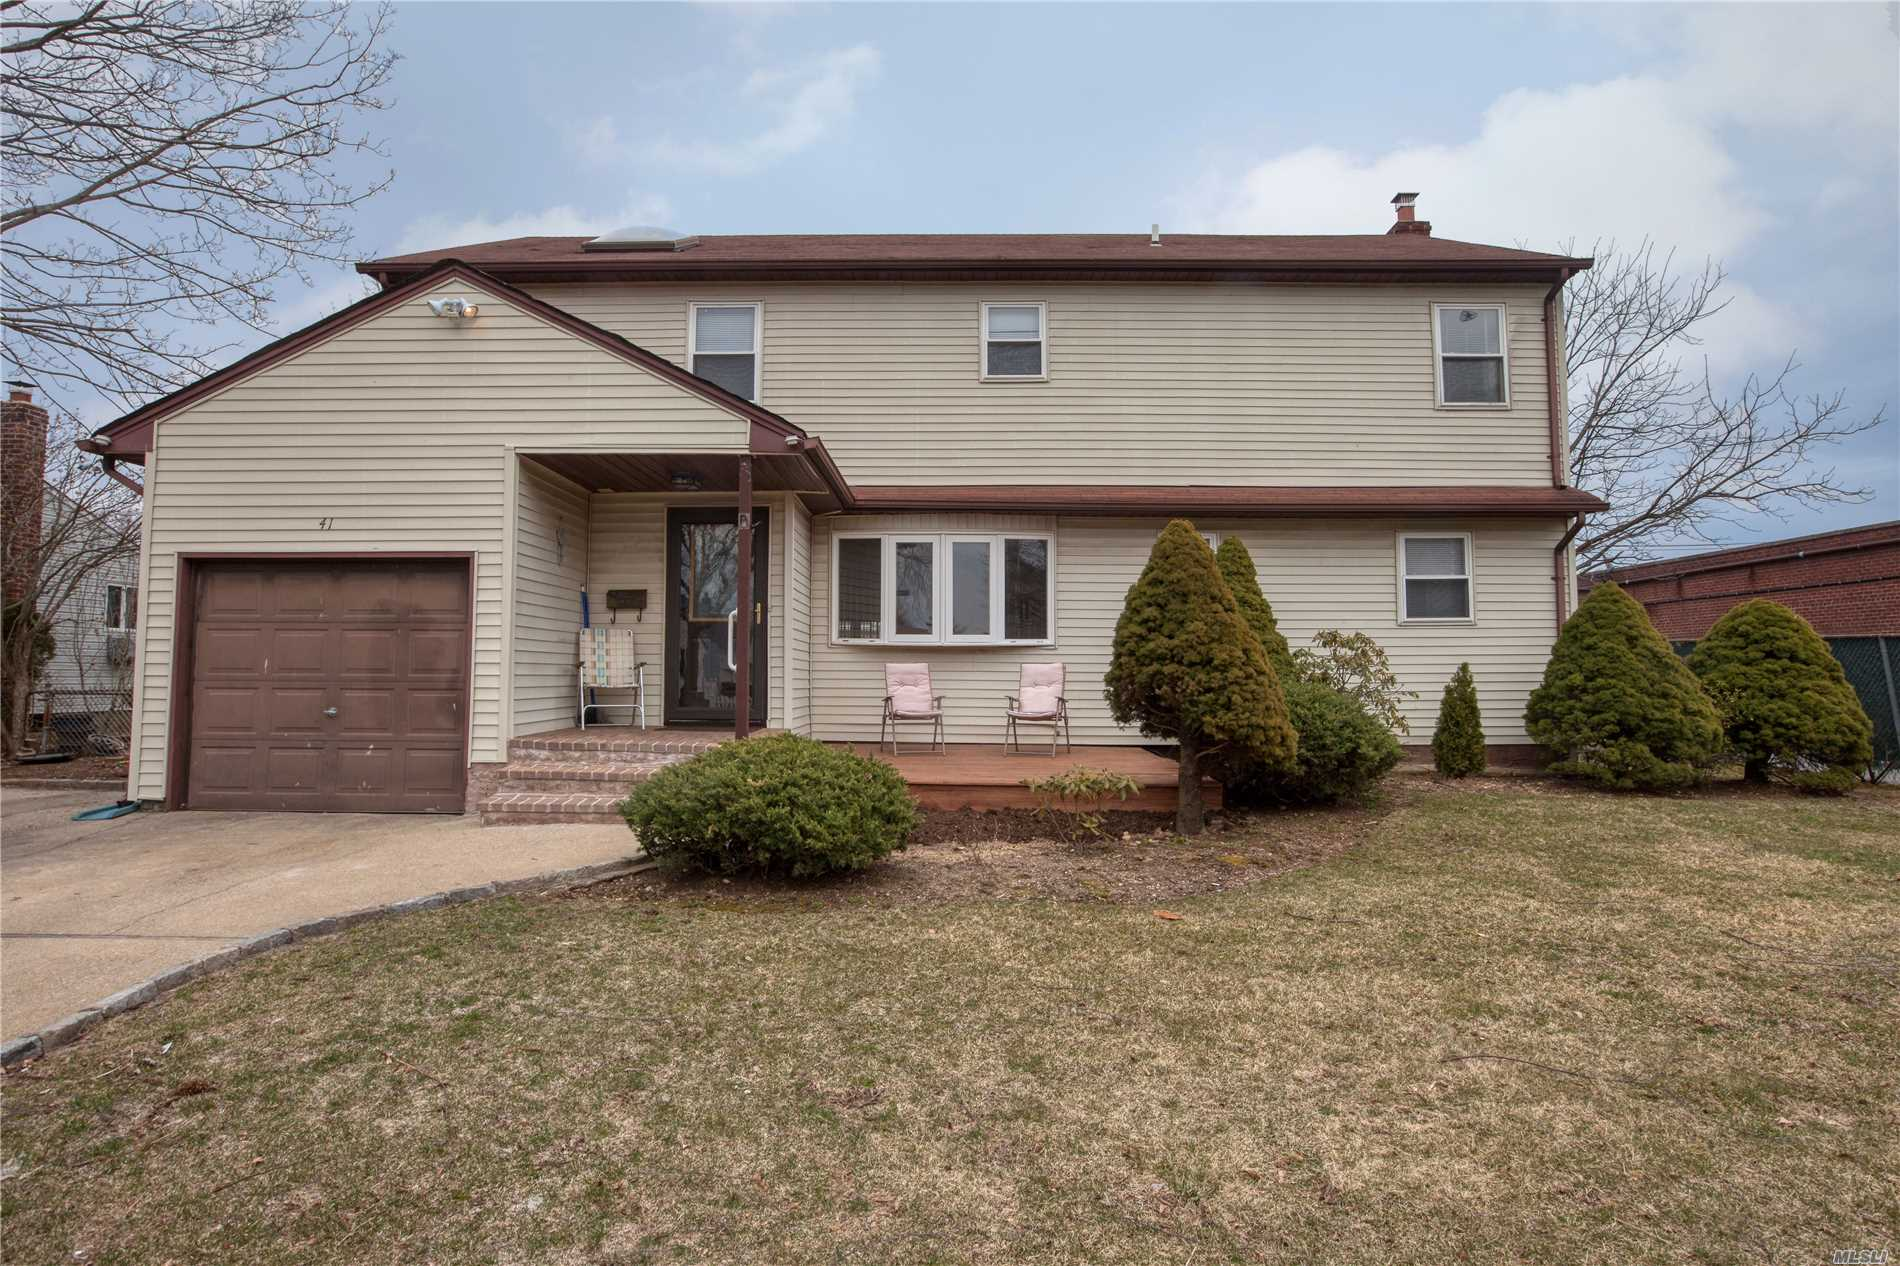 Magnificent, large Colonial, approx. 2, 488 sq ft, 6 BRS, 3 Fbths, situated on quiet block, W. F'dale, great curb appeal w/ vinyl sided exterior, front porch, newer EIK w/ marble counters, rear ext. fam rm w/ tray ceiling & sliding doors to backyard, all windows replaced, new w/w carpeting, newly painted interior, gas in street, Woodward Pkwy Elem School, convenient to all transportation & shopping.